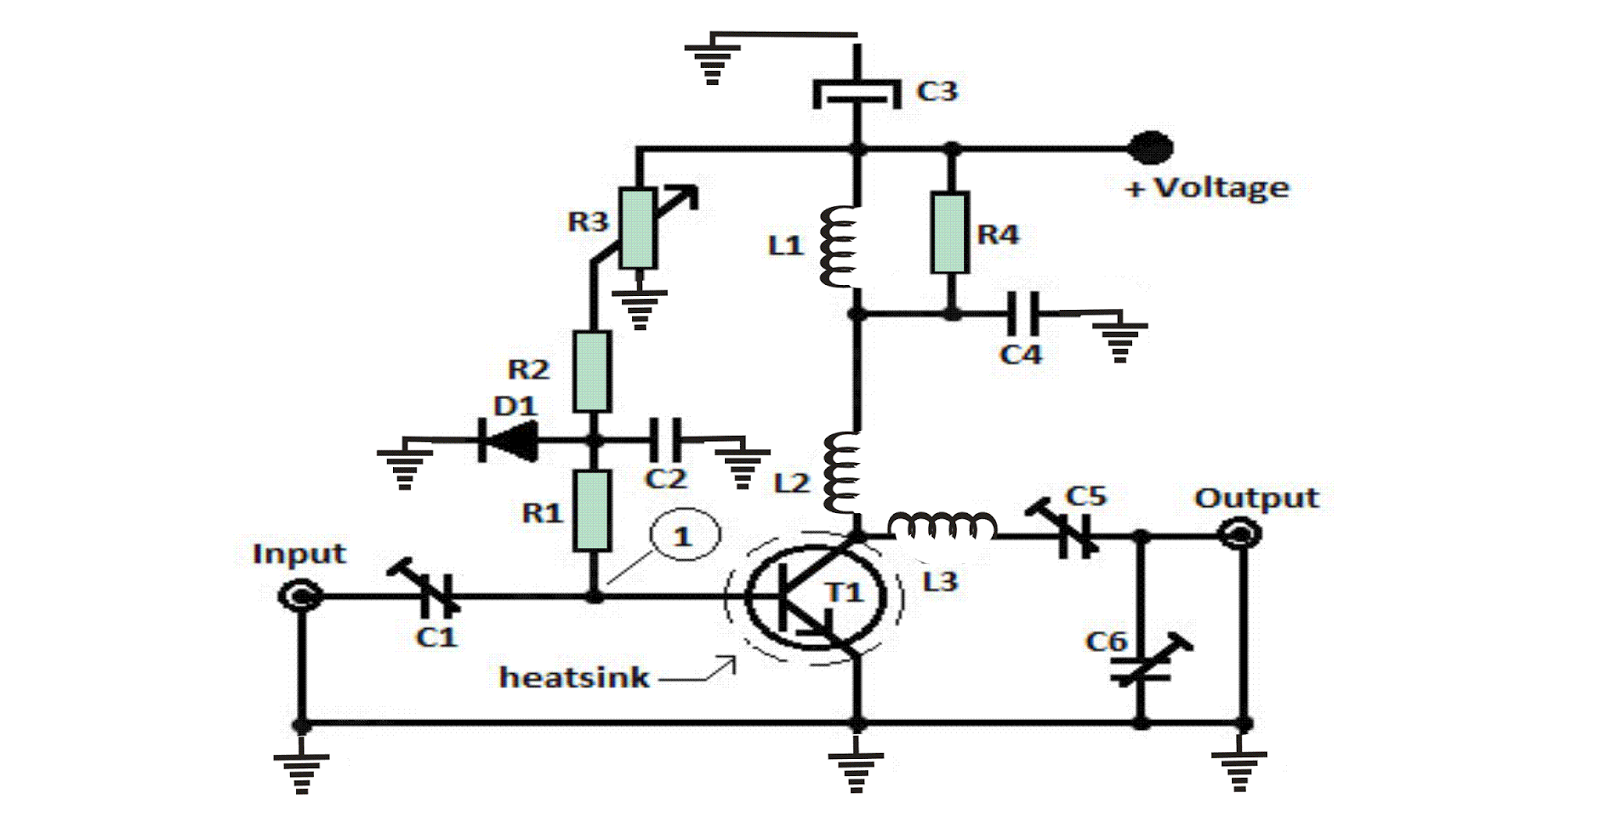 Fm Amplifier Circuit Not Lossing Wiring Diagram Bly94 50w Rf 1 Watt 10km Transmitter Electricalcorecircuits Rh Blogspot Com Schematic